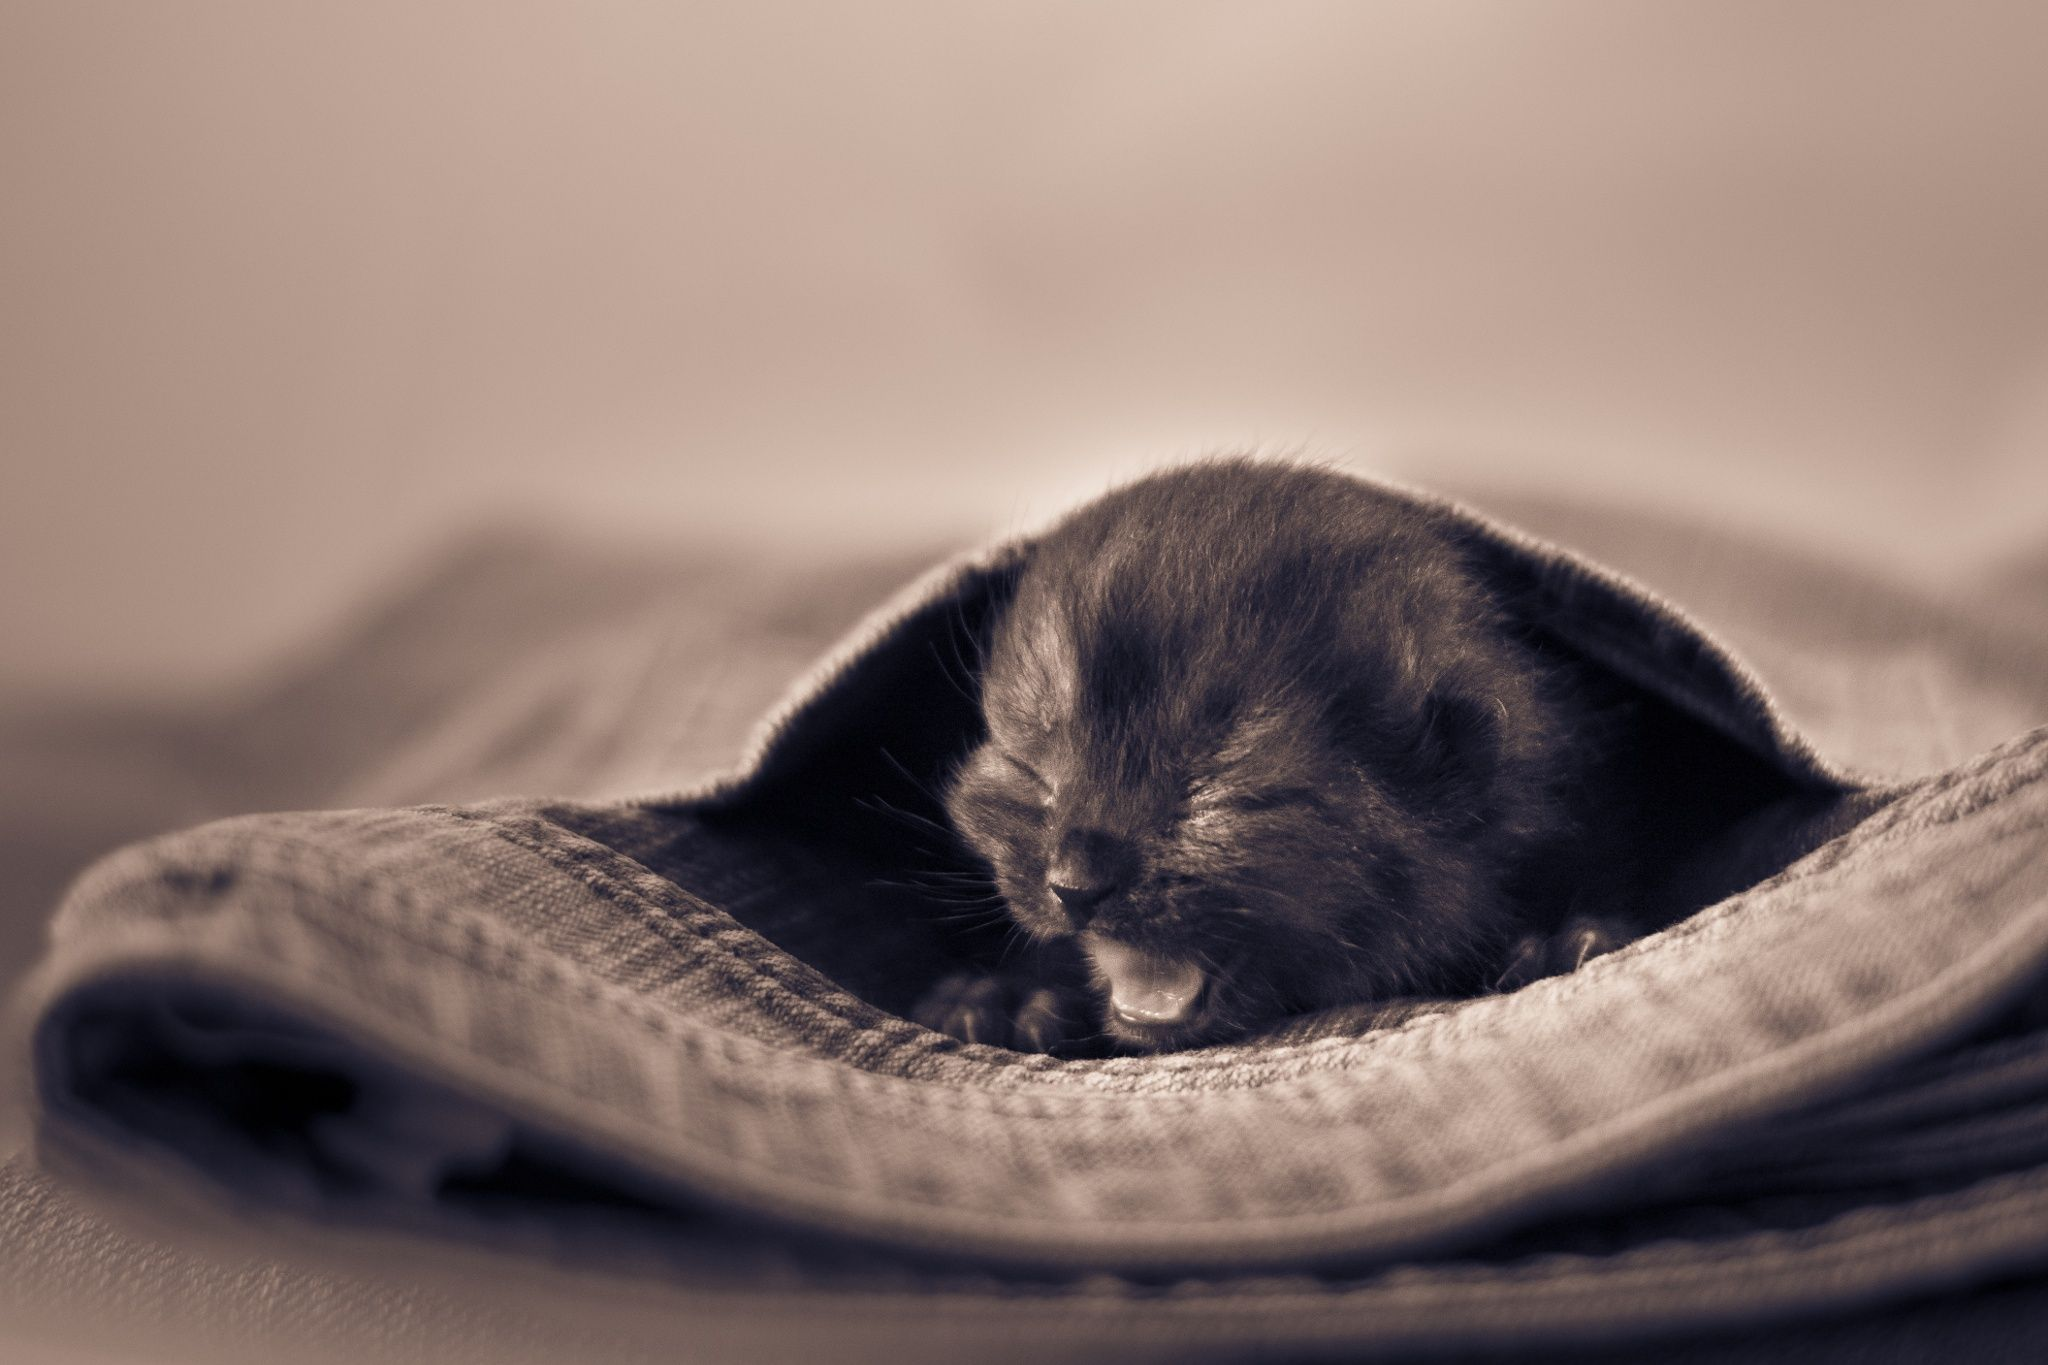 Kitty Jeans by Alex Kaßner on 500px